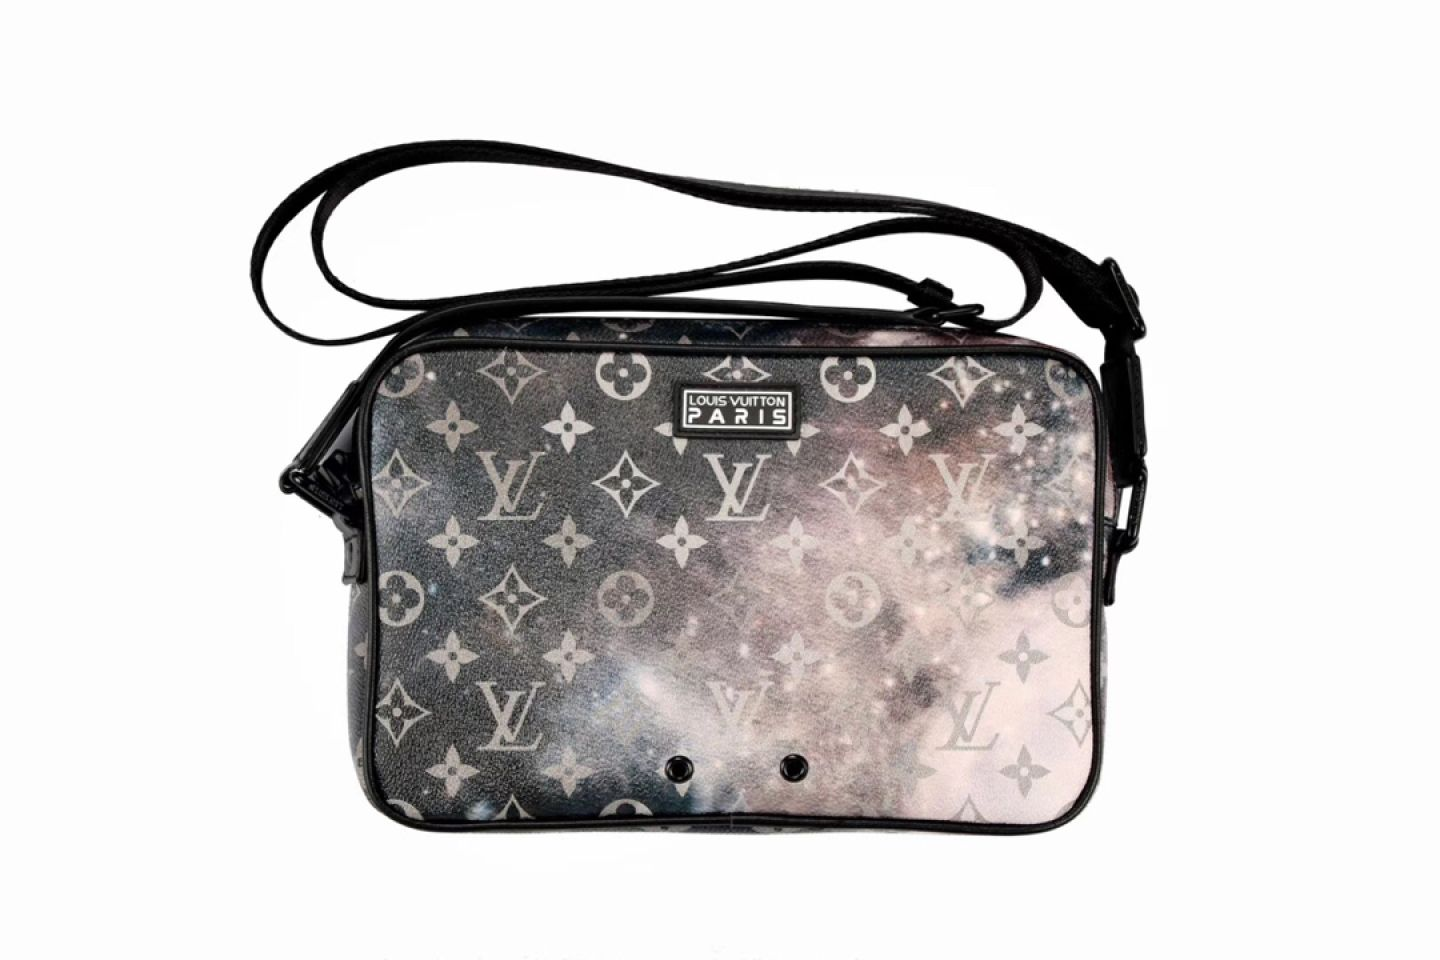 Goods Lo*is Vu*tton Alpha Messenger Monogram Galaxy Black Multicolor 1 lois_vutton_alpha_messenger_monogram_galaxy_black_multicolor__1